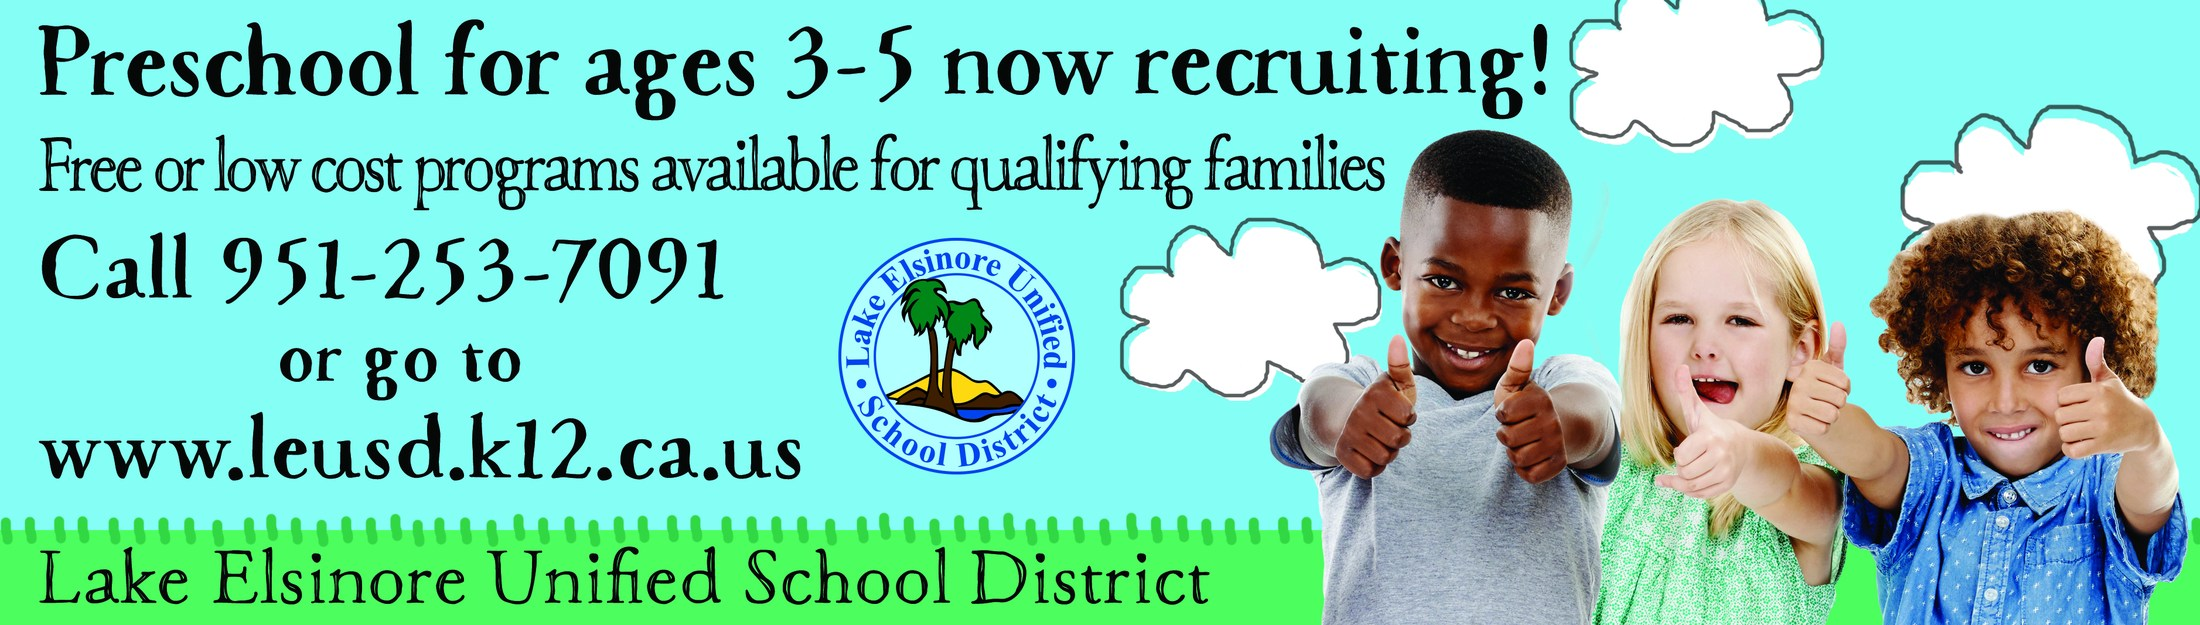 Banner advertising preschool availability by calling (951) 253-7091